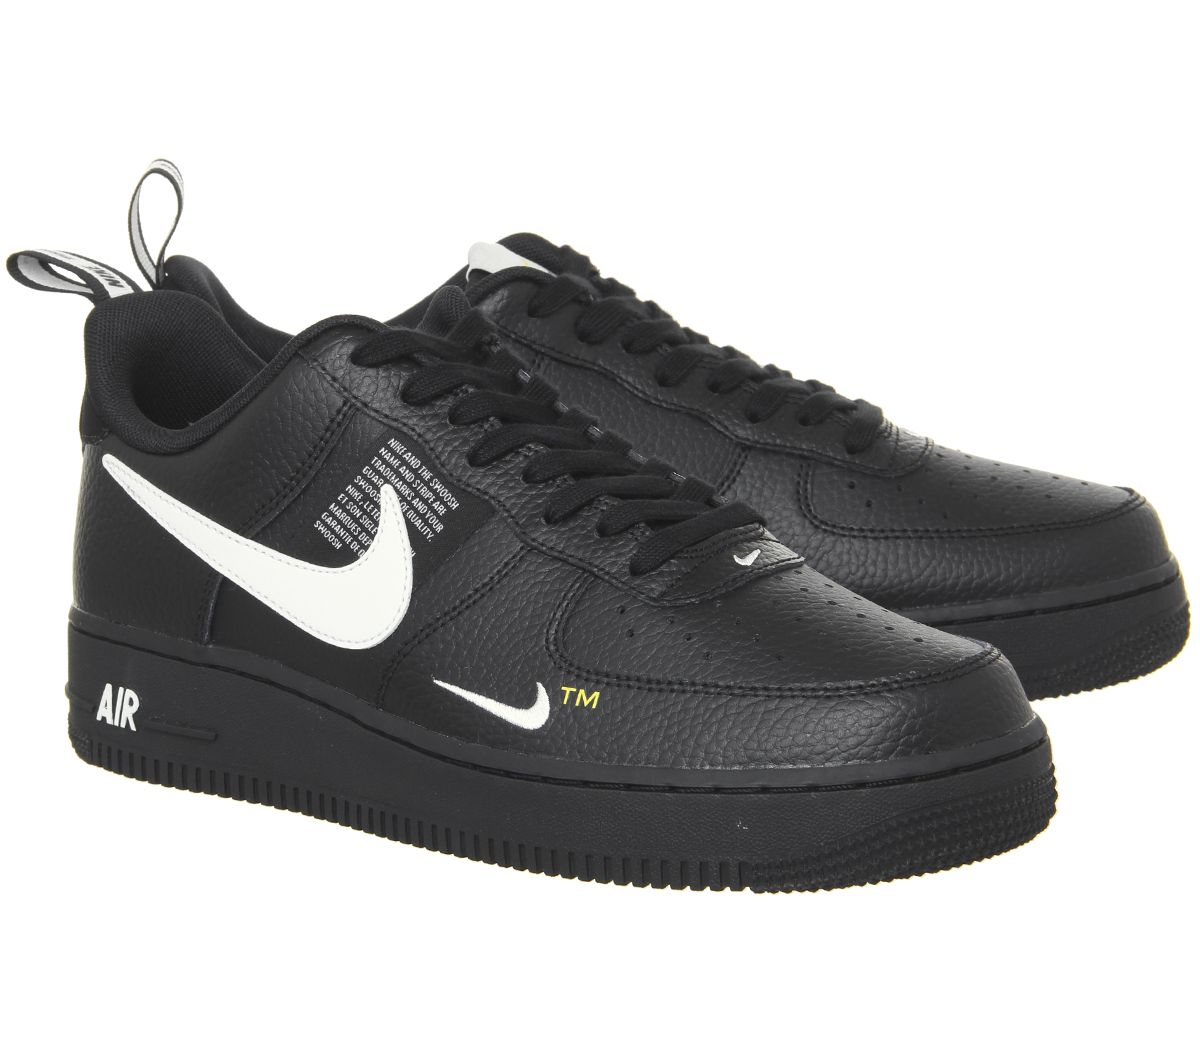 on sale 1689f 5a3ef Nike Air Force 1 Utility Trainers Black White Black Tour Yellow - His  trainers